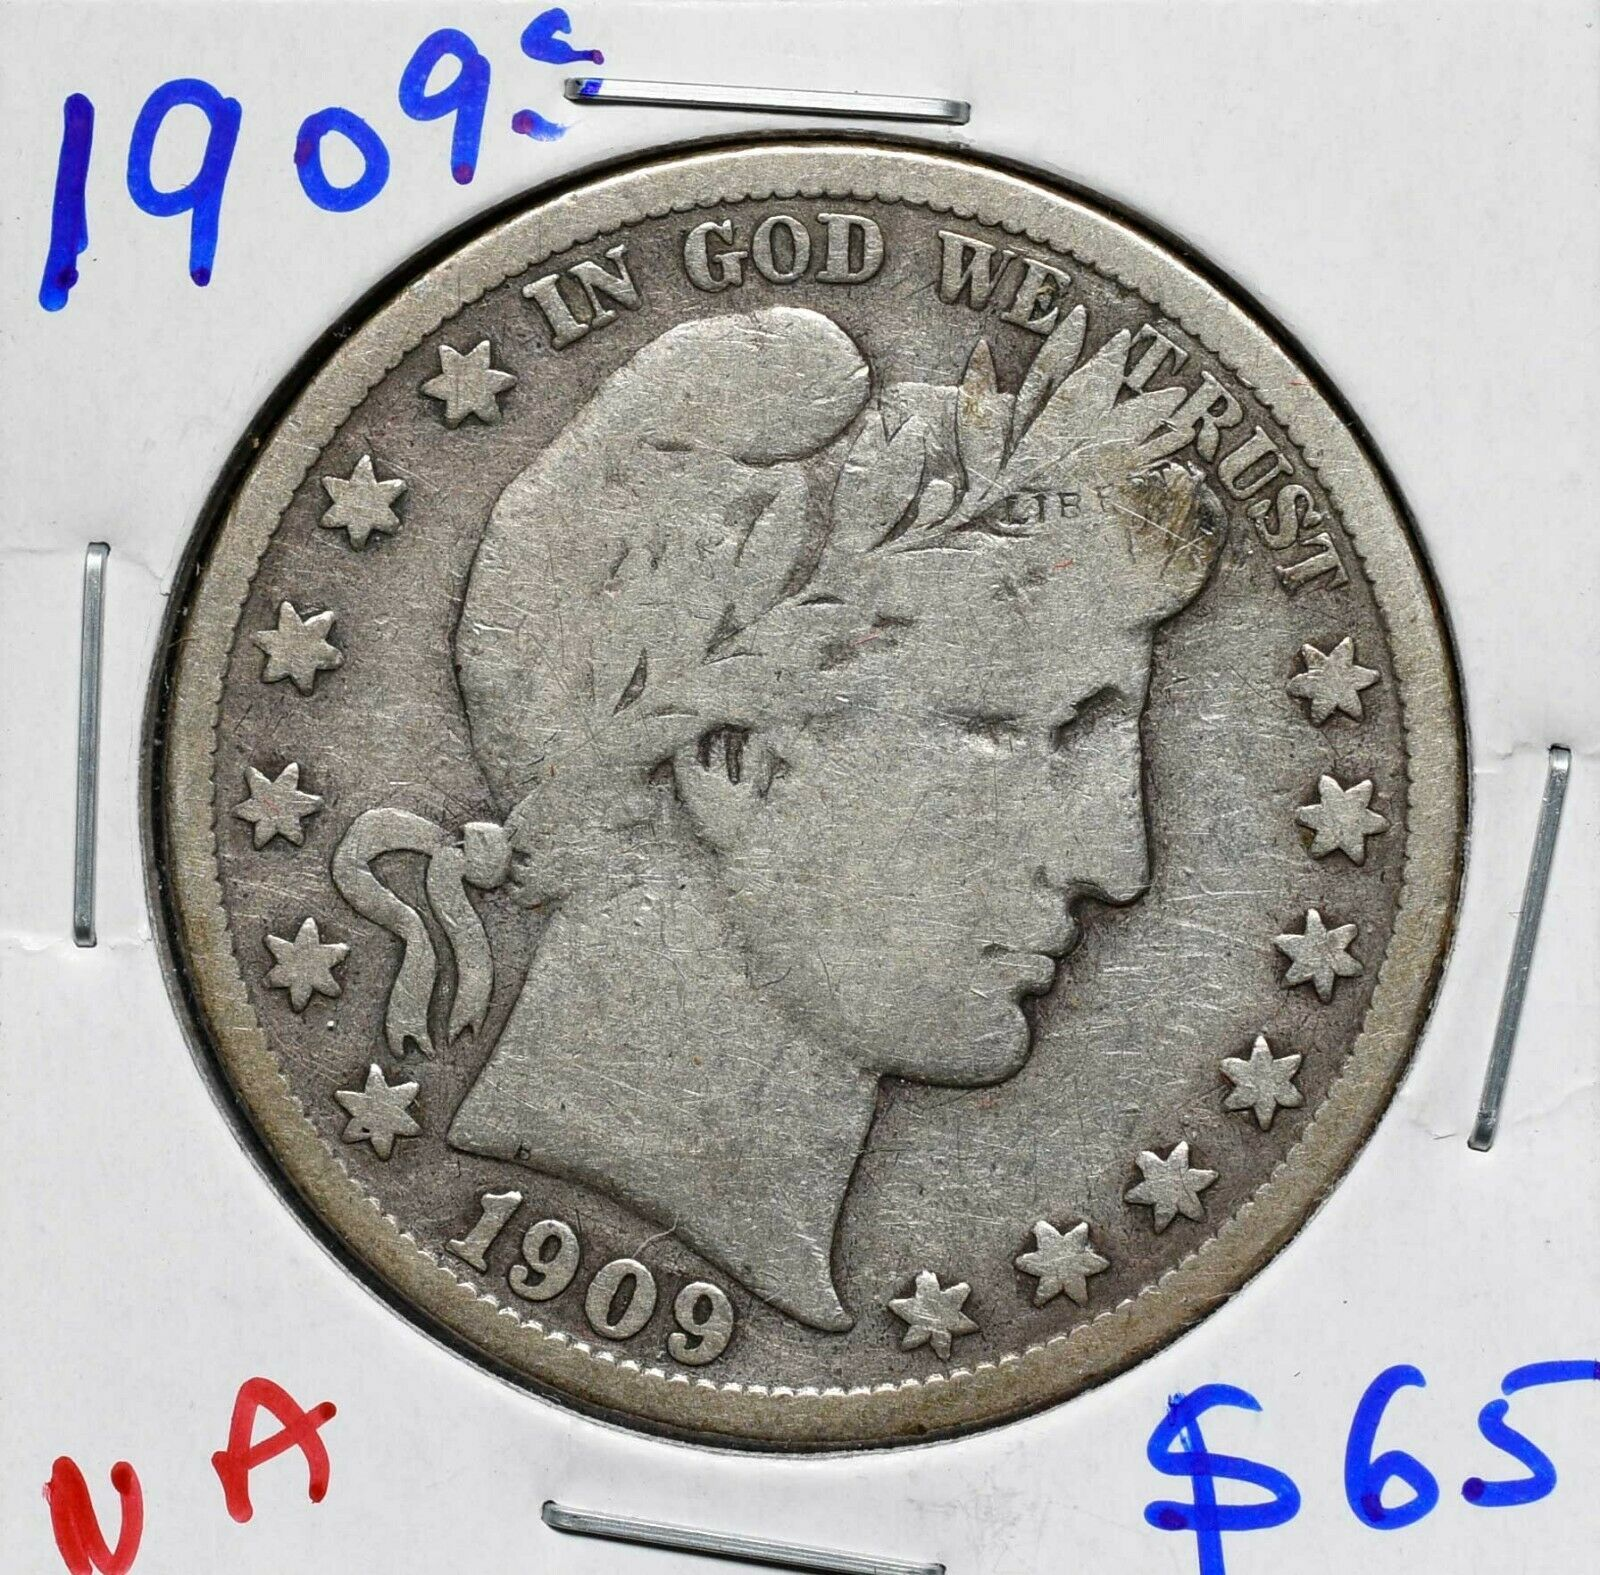 1909S Silver Barber Half Dollar 50¢ Coin Lot# A 610